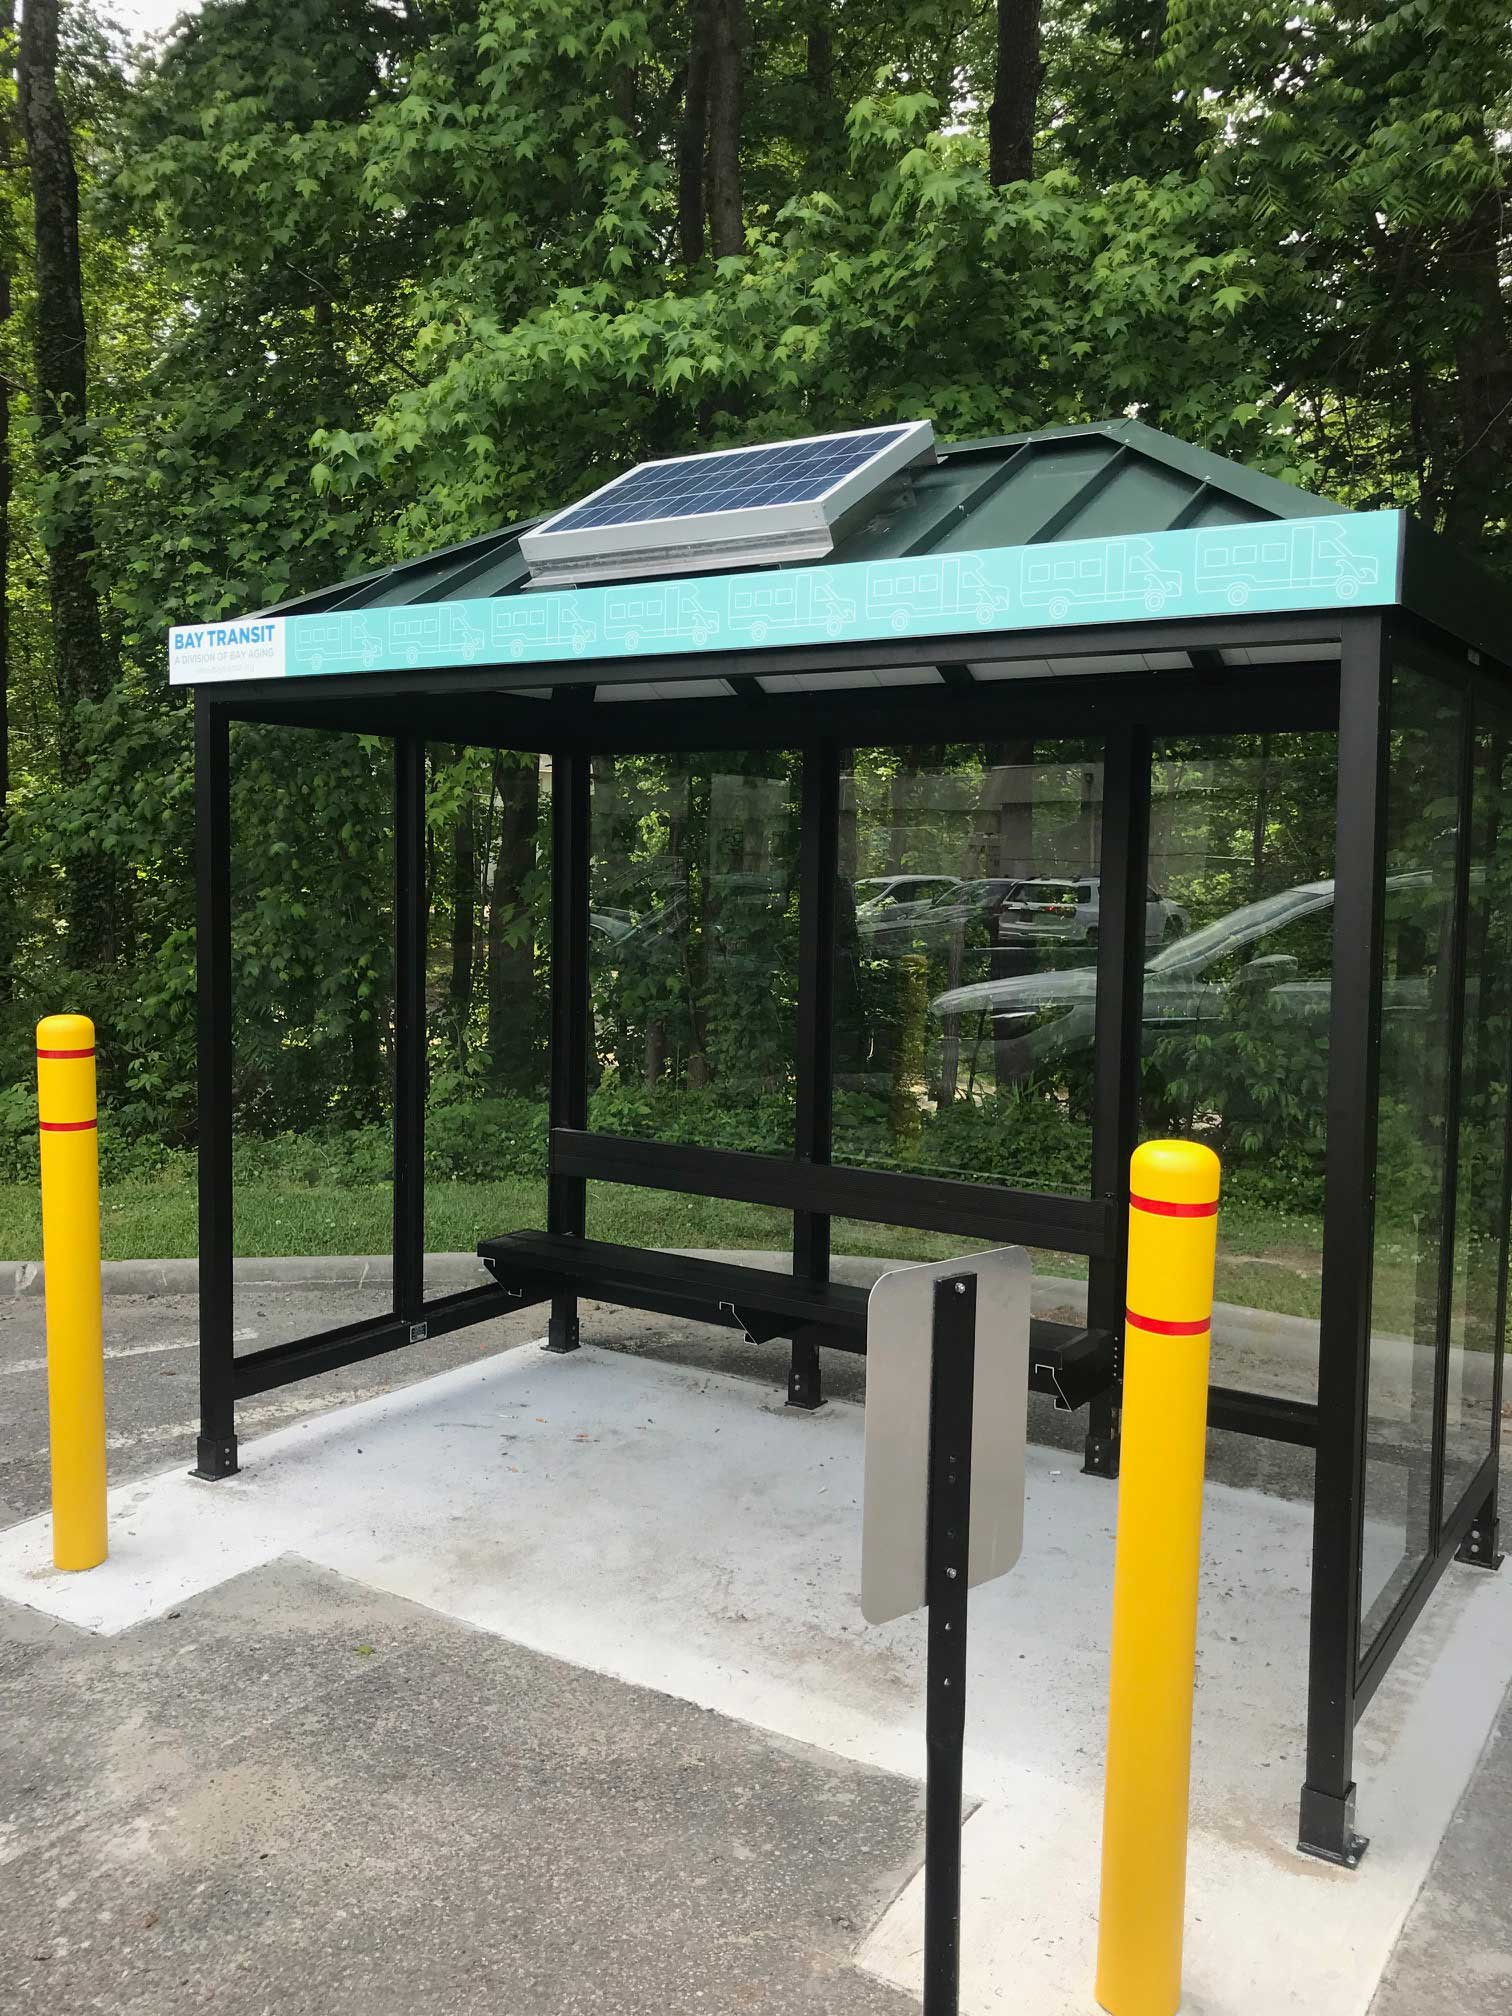 Bay Transit Riverside Hospital Bus Shelter